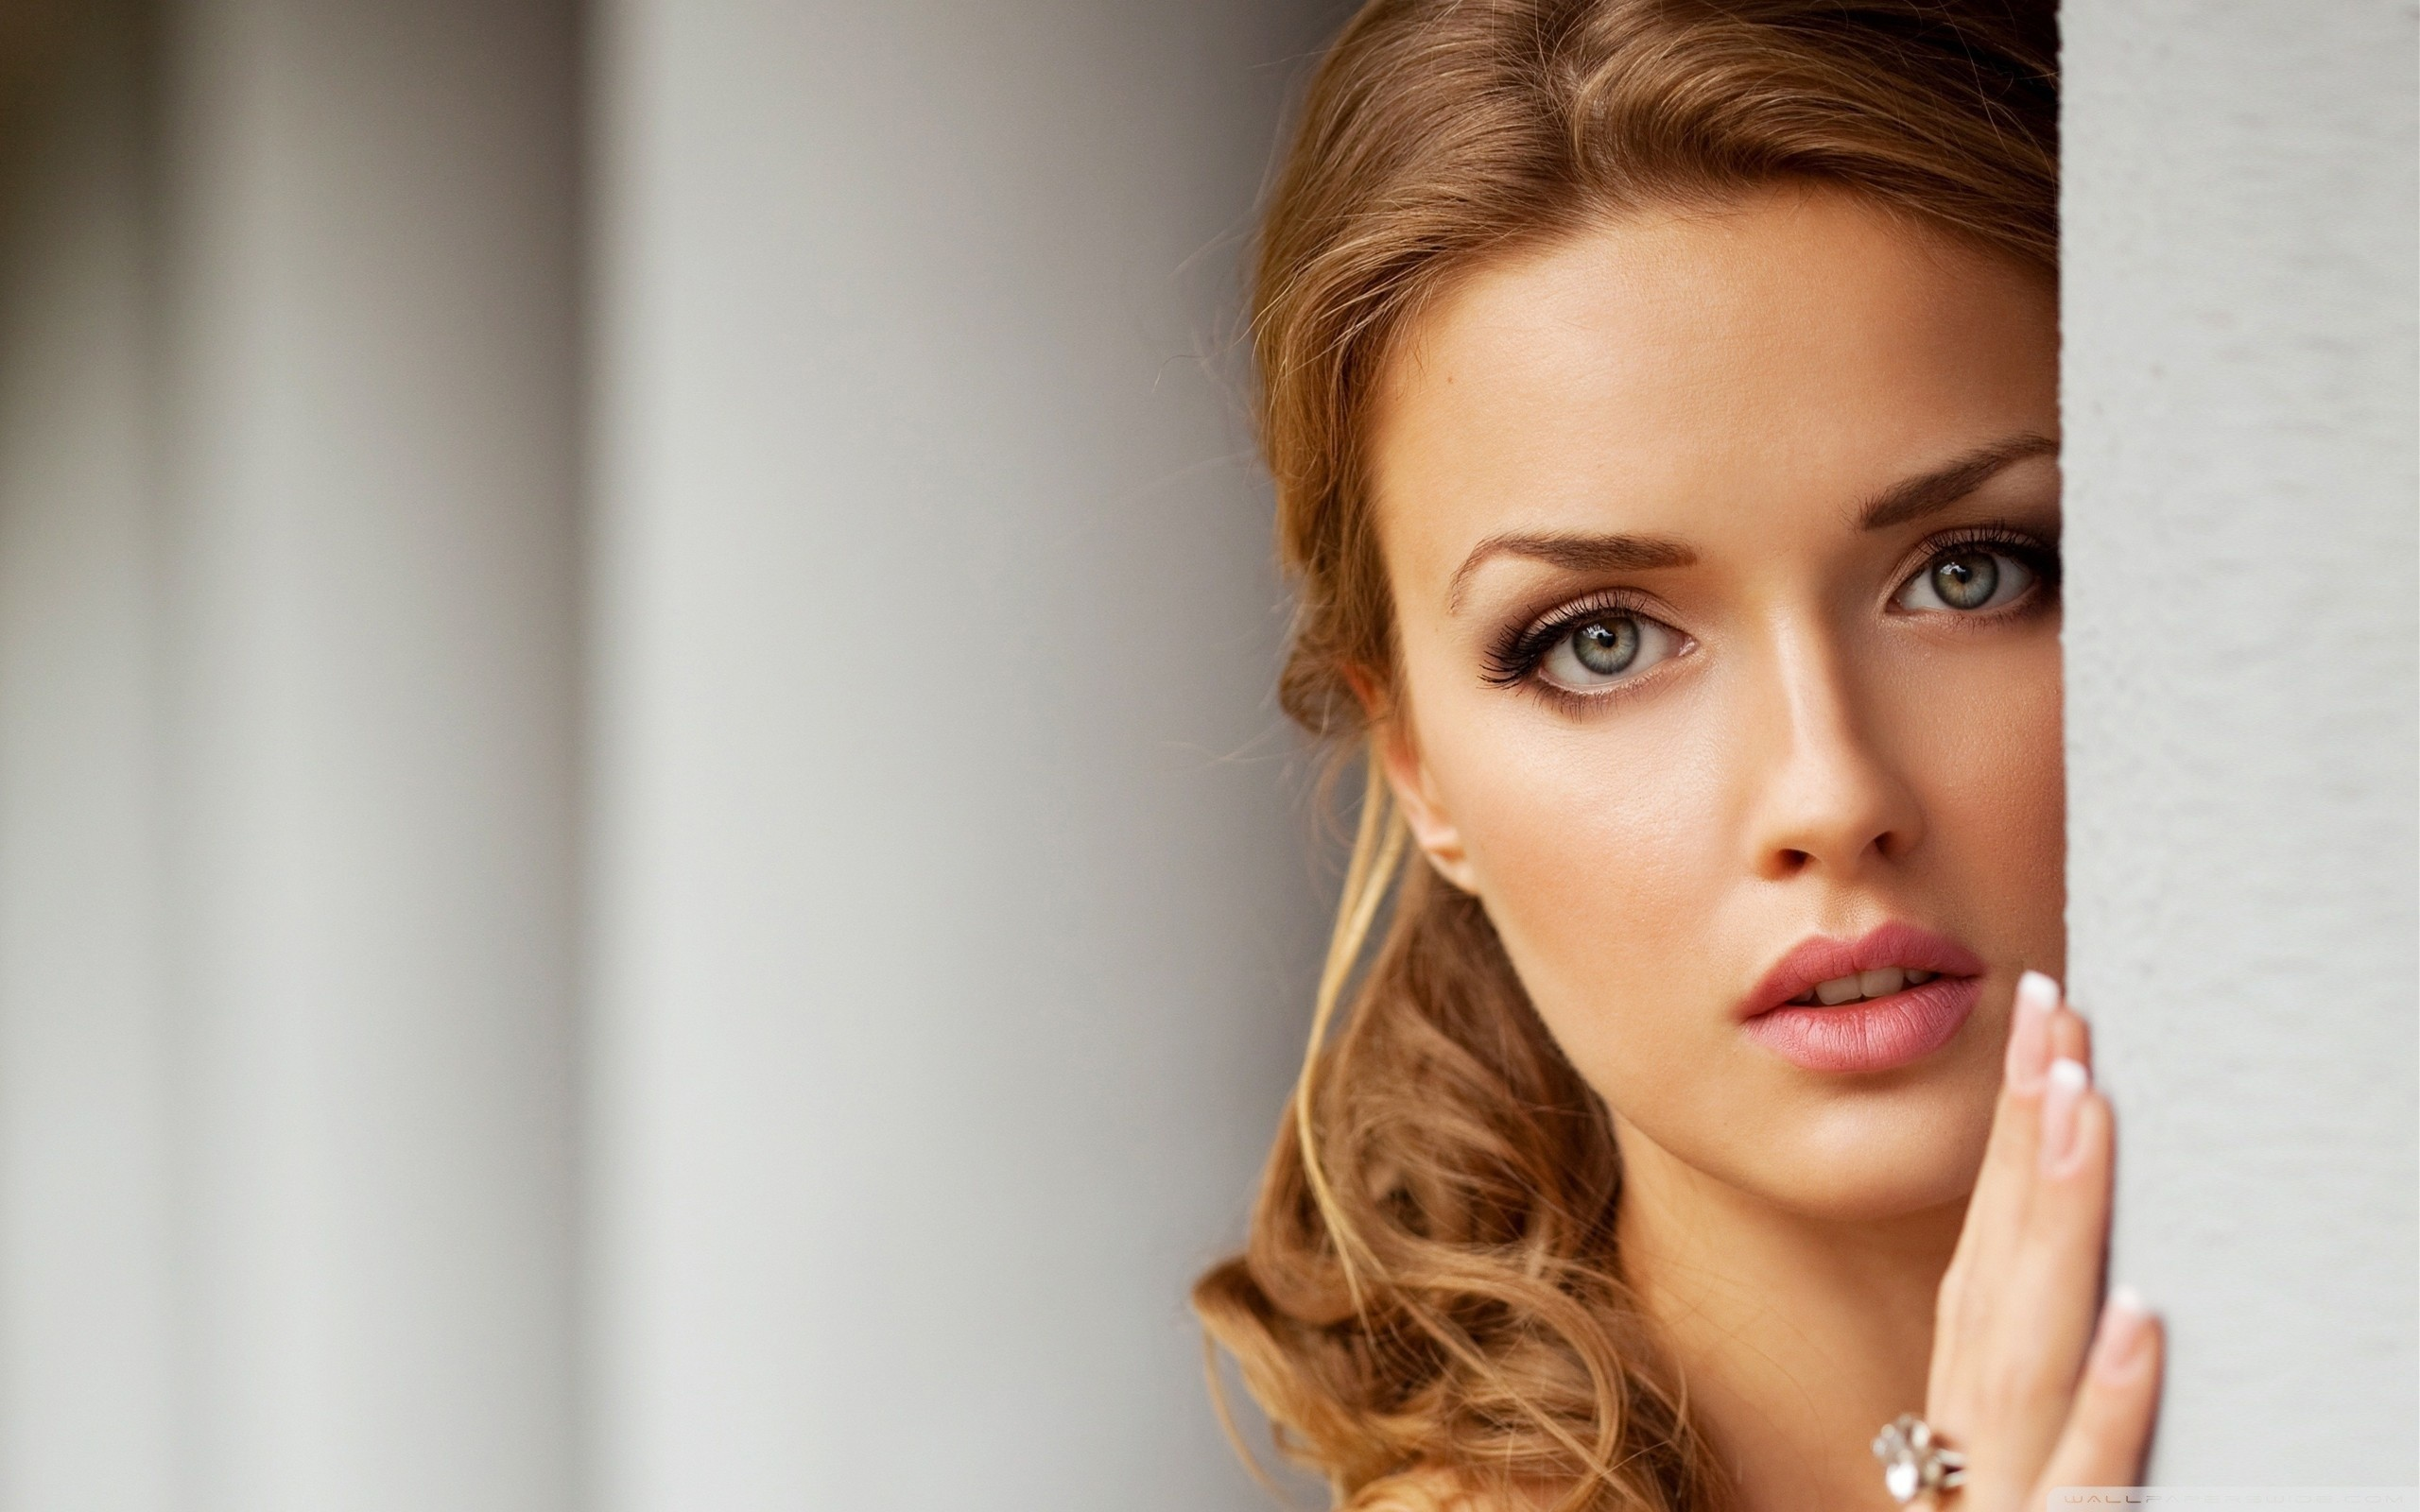 Beautiful woman photo